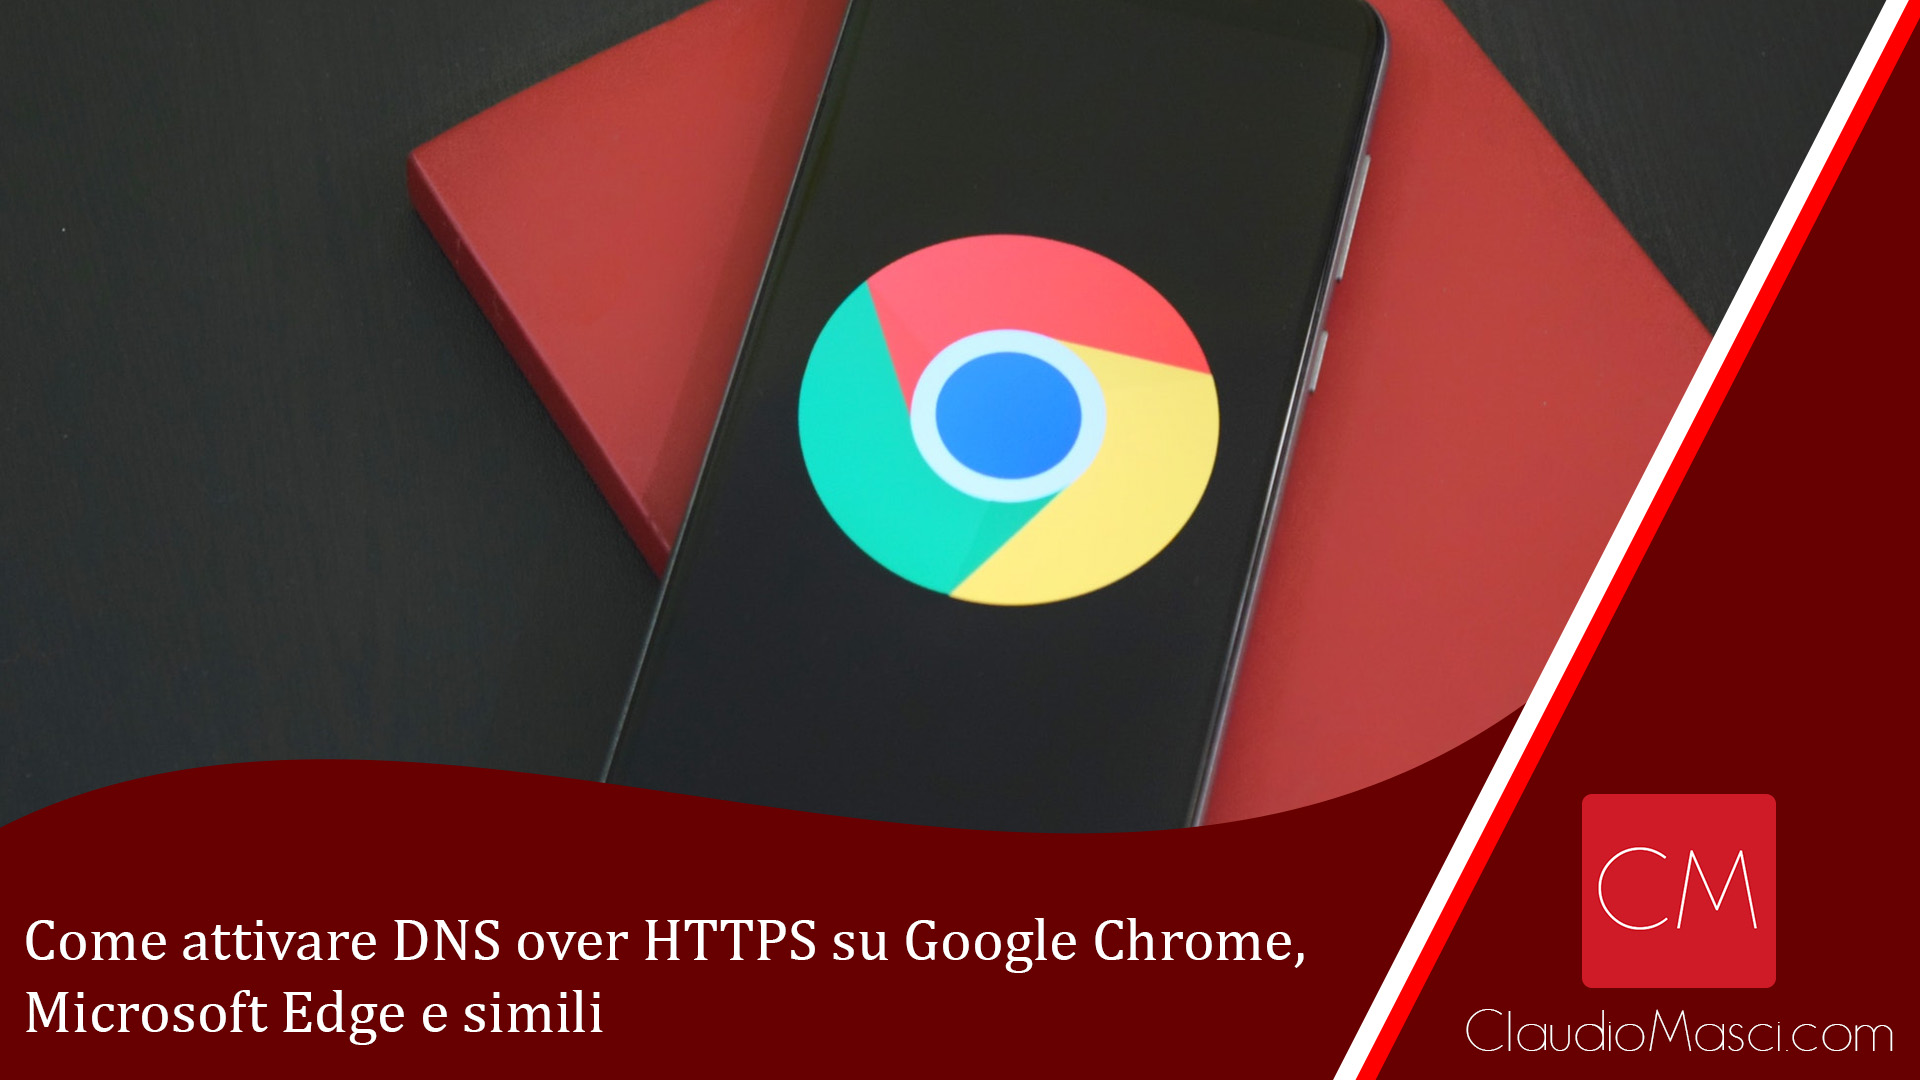 Come attivare DNS over HTTPS su Google Chrome, Microsoft Edge e simili